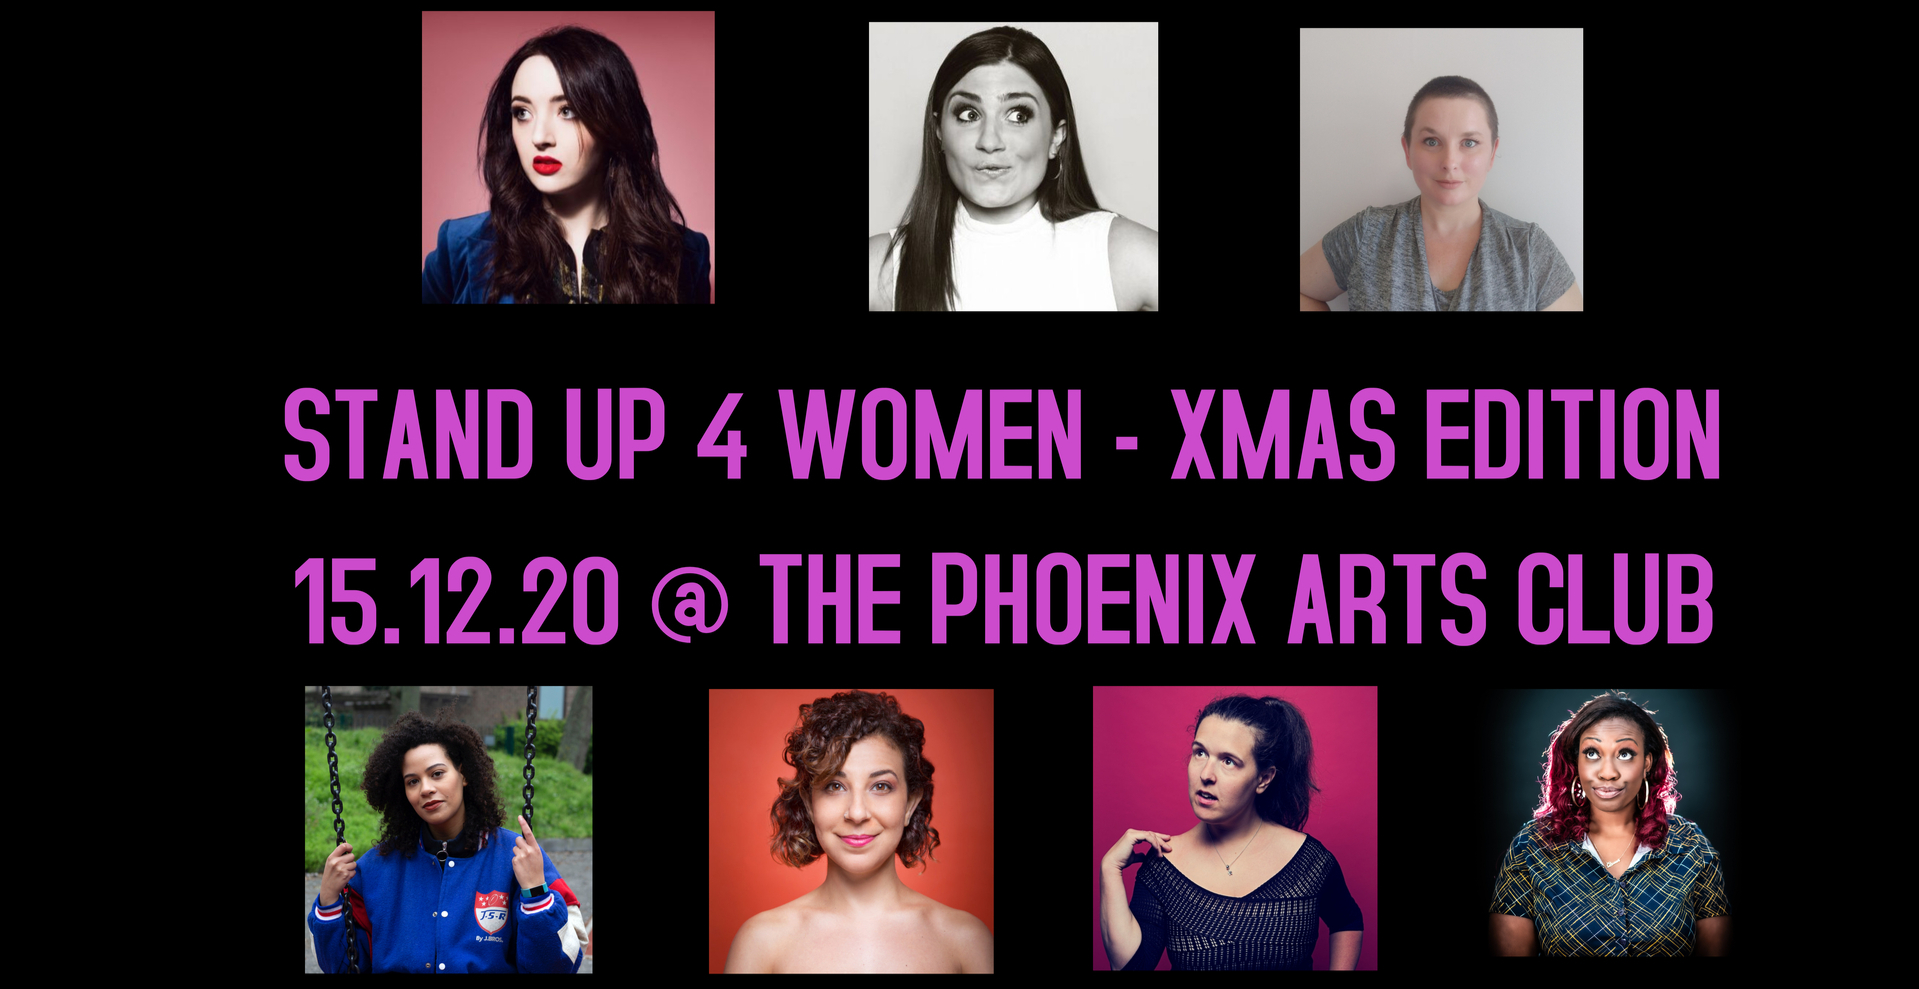 Stand Up 4 Women (Xmas Edition)